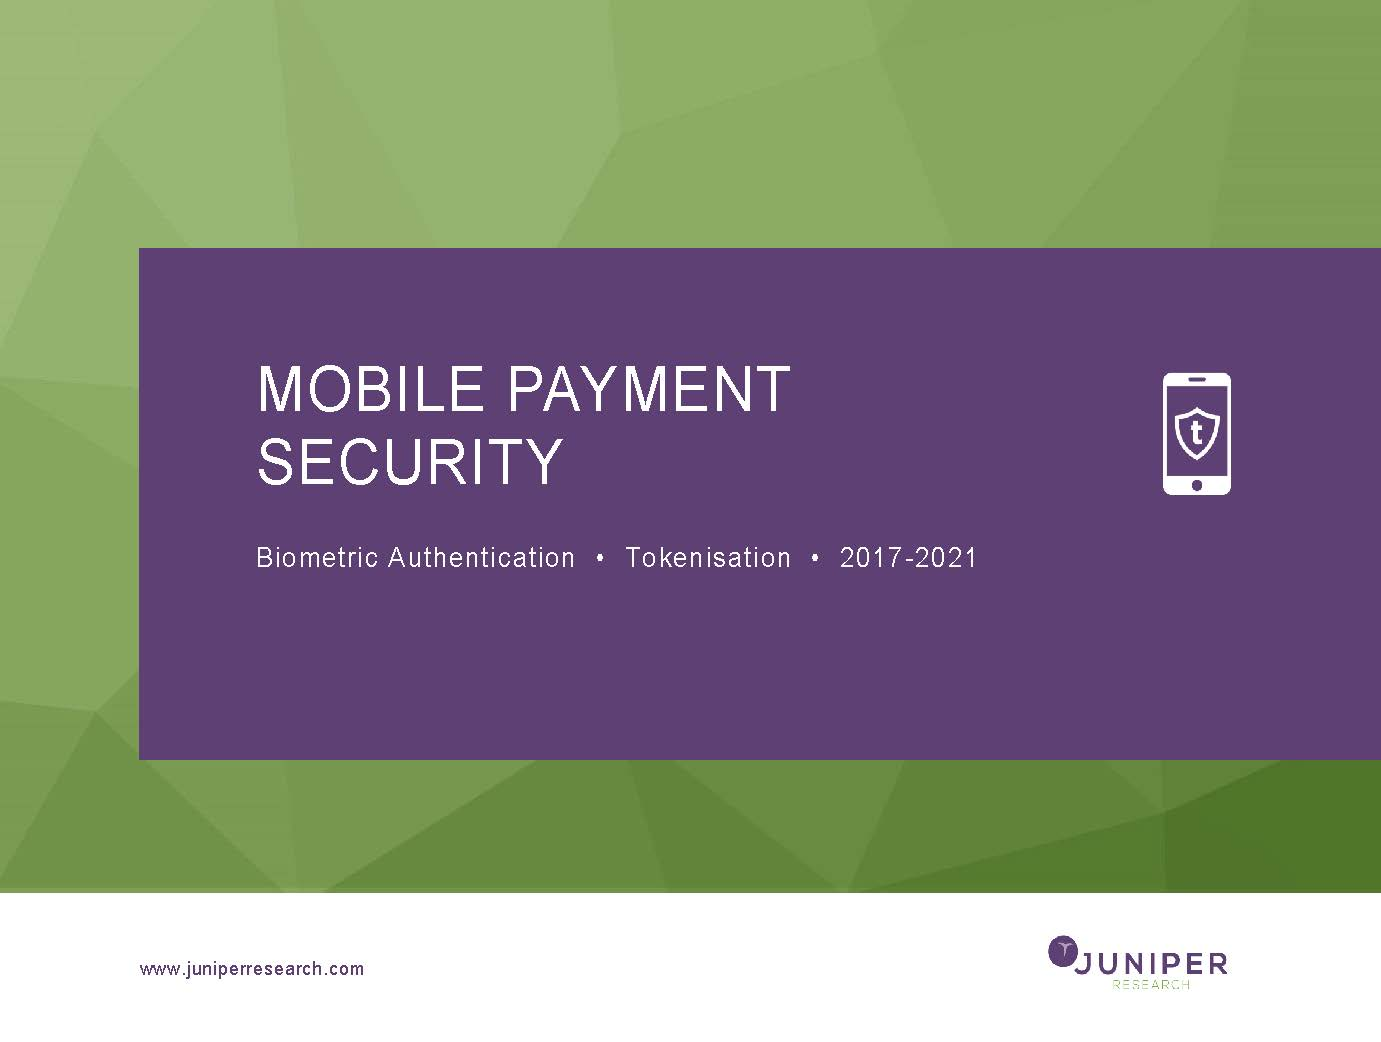 Mobile Payment Security - Q4 2017